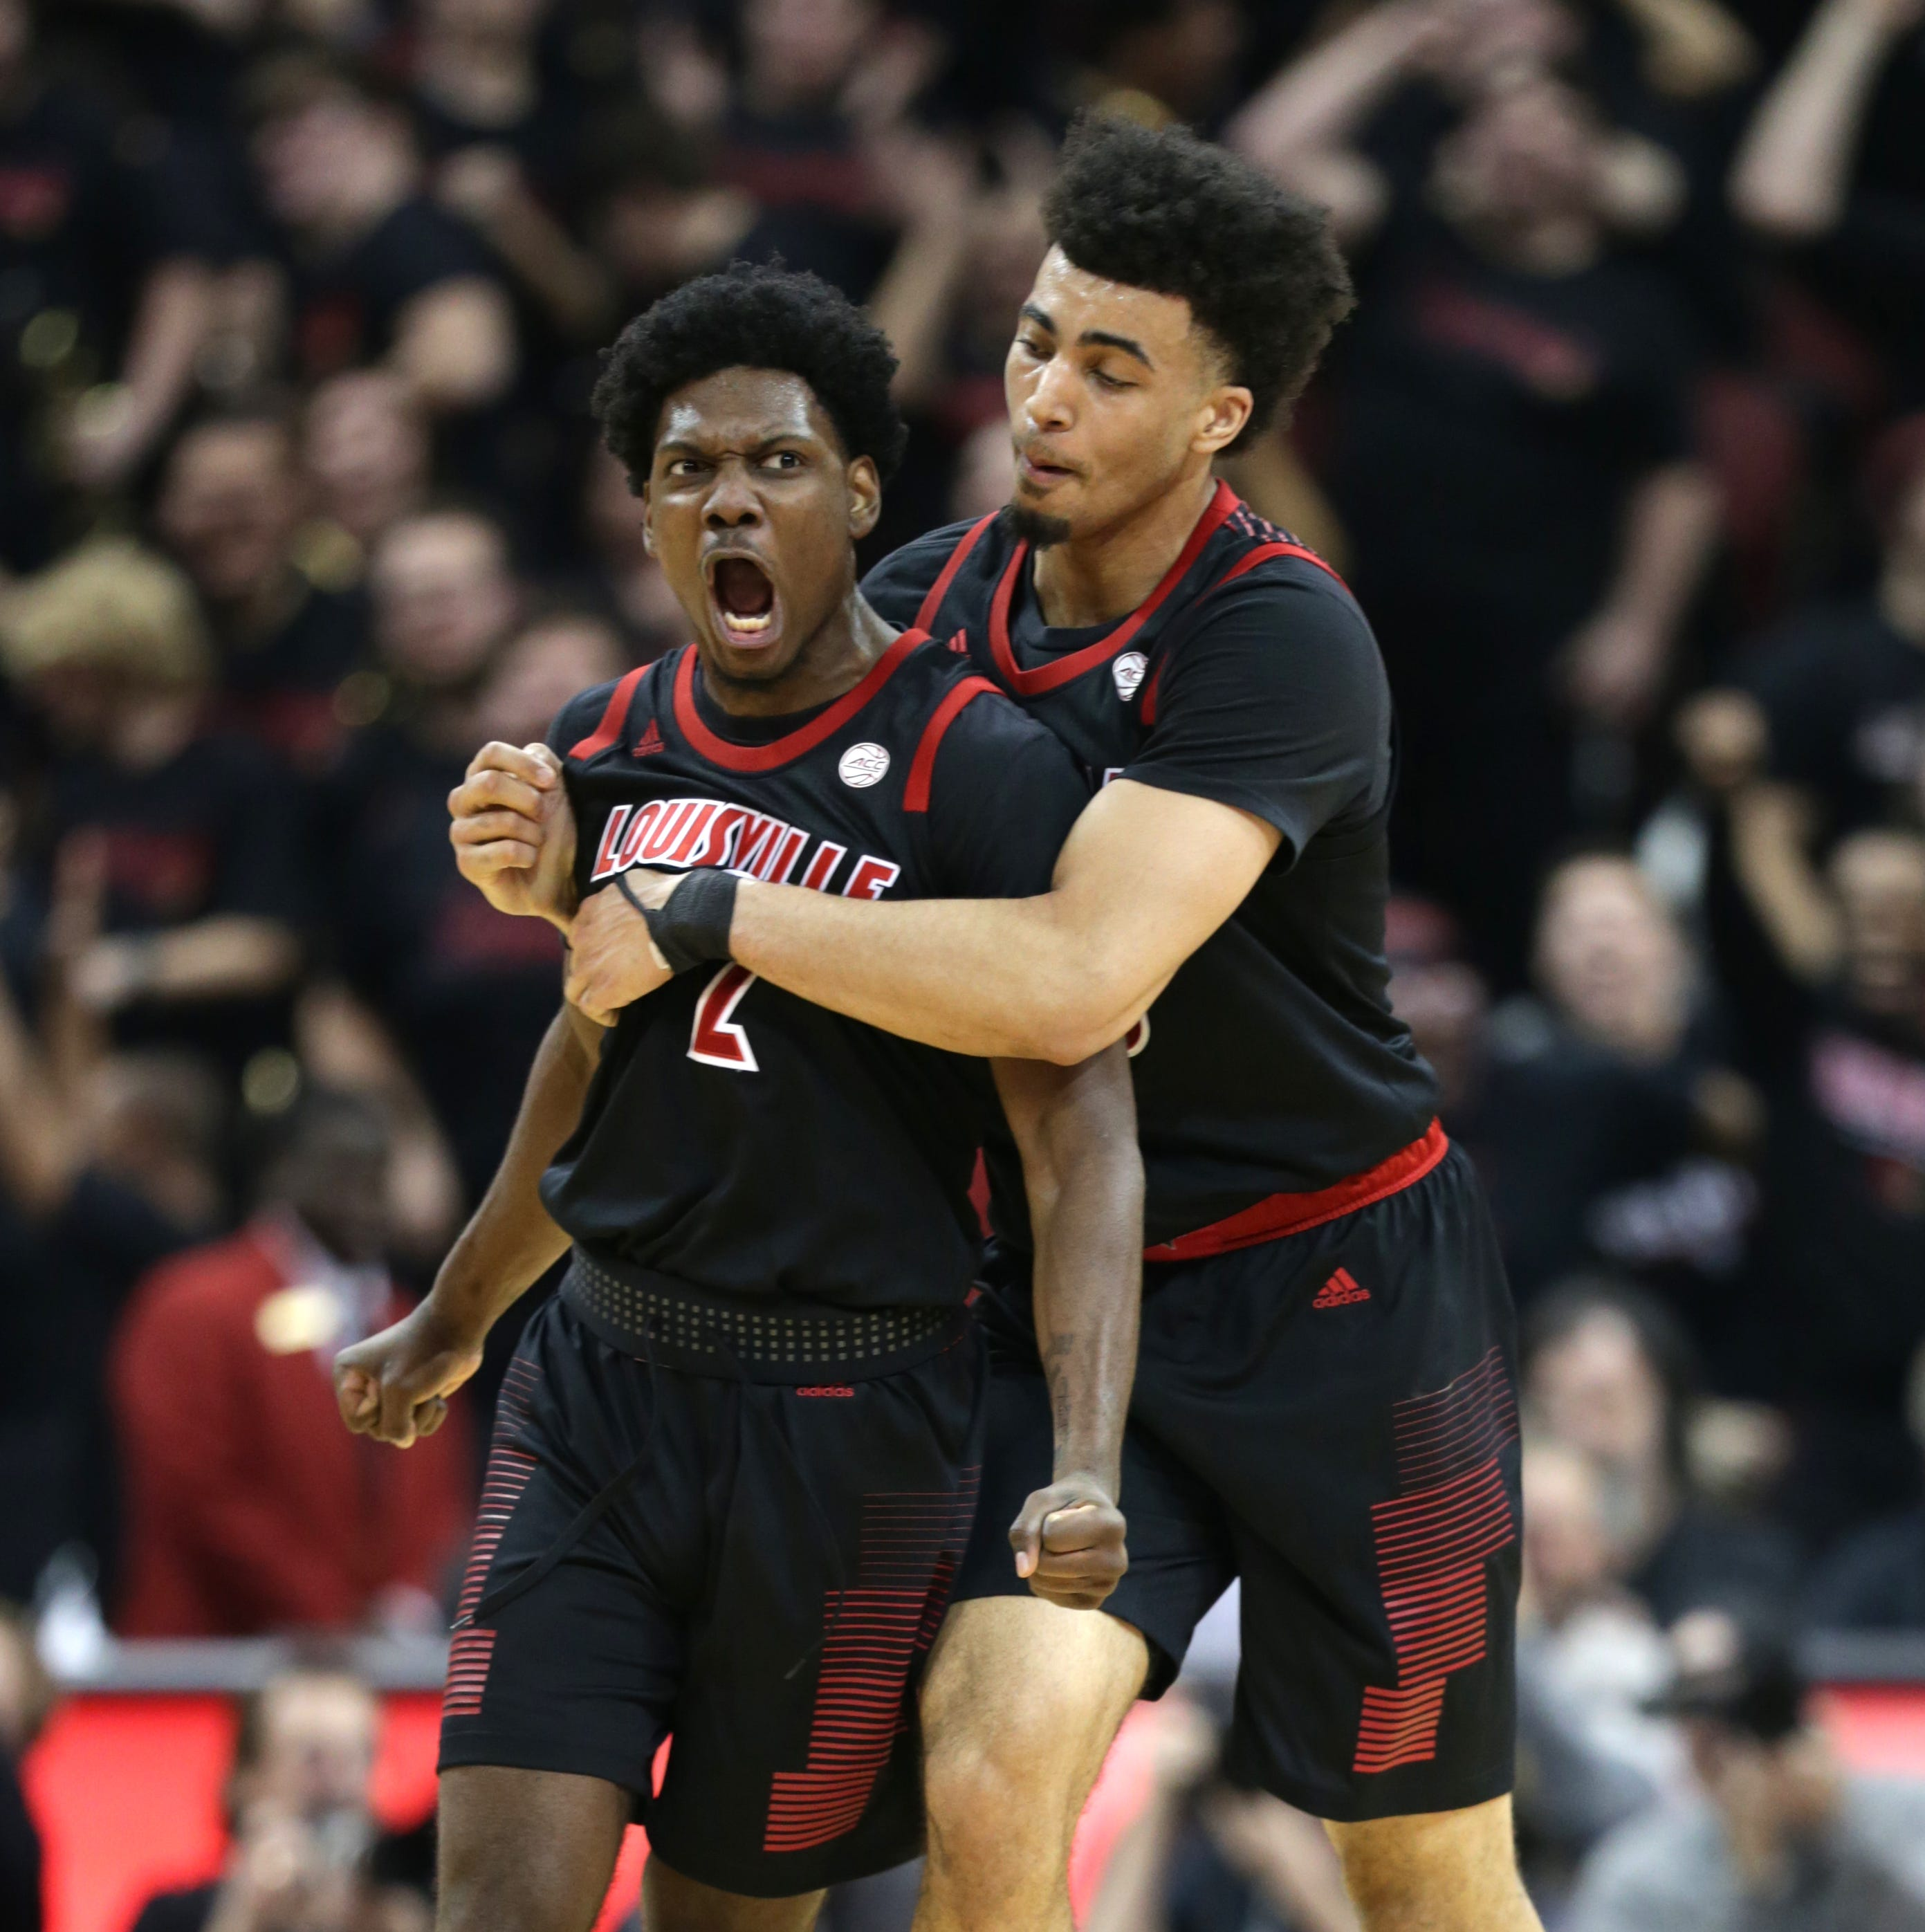 Louisville basketball can restore its confidence by handling Clemson